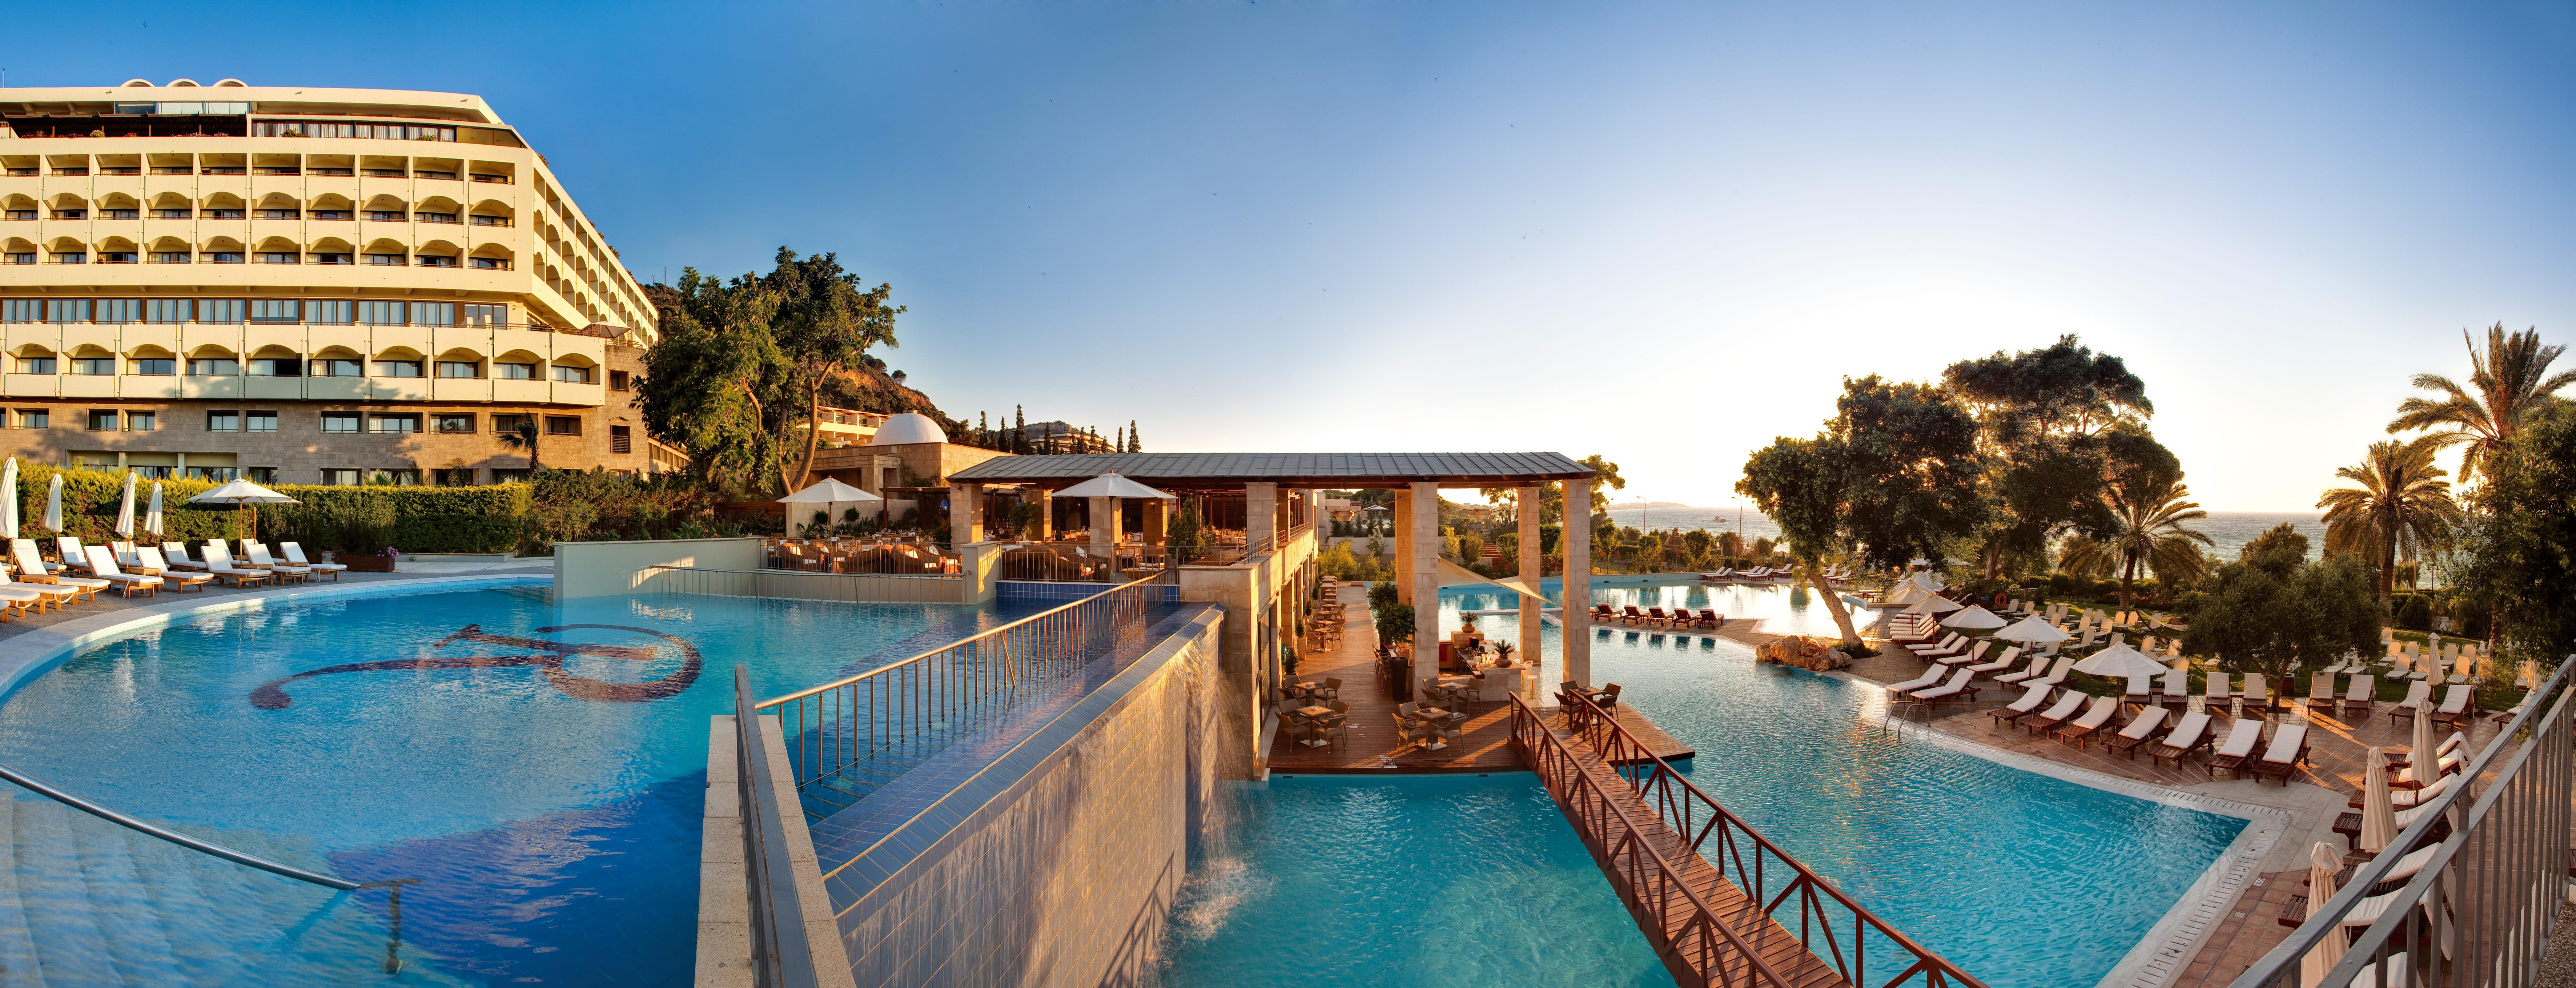 E.I.A. of Amathus Beach Hotel - 1